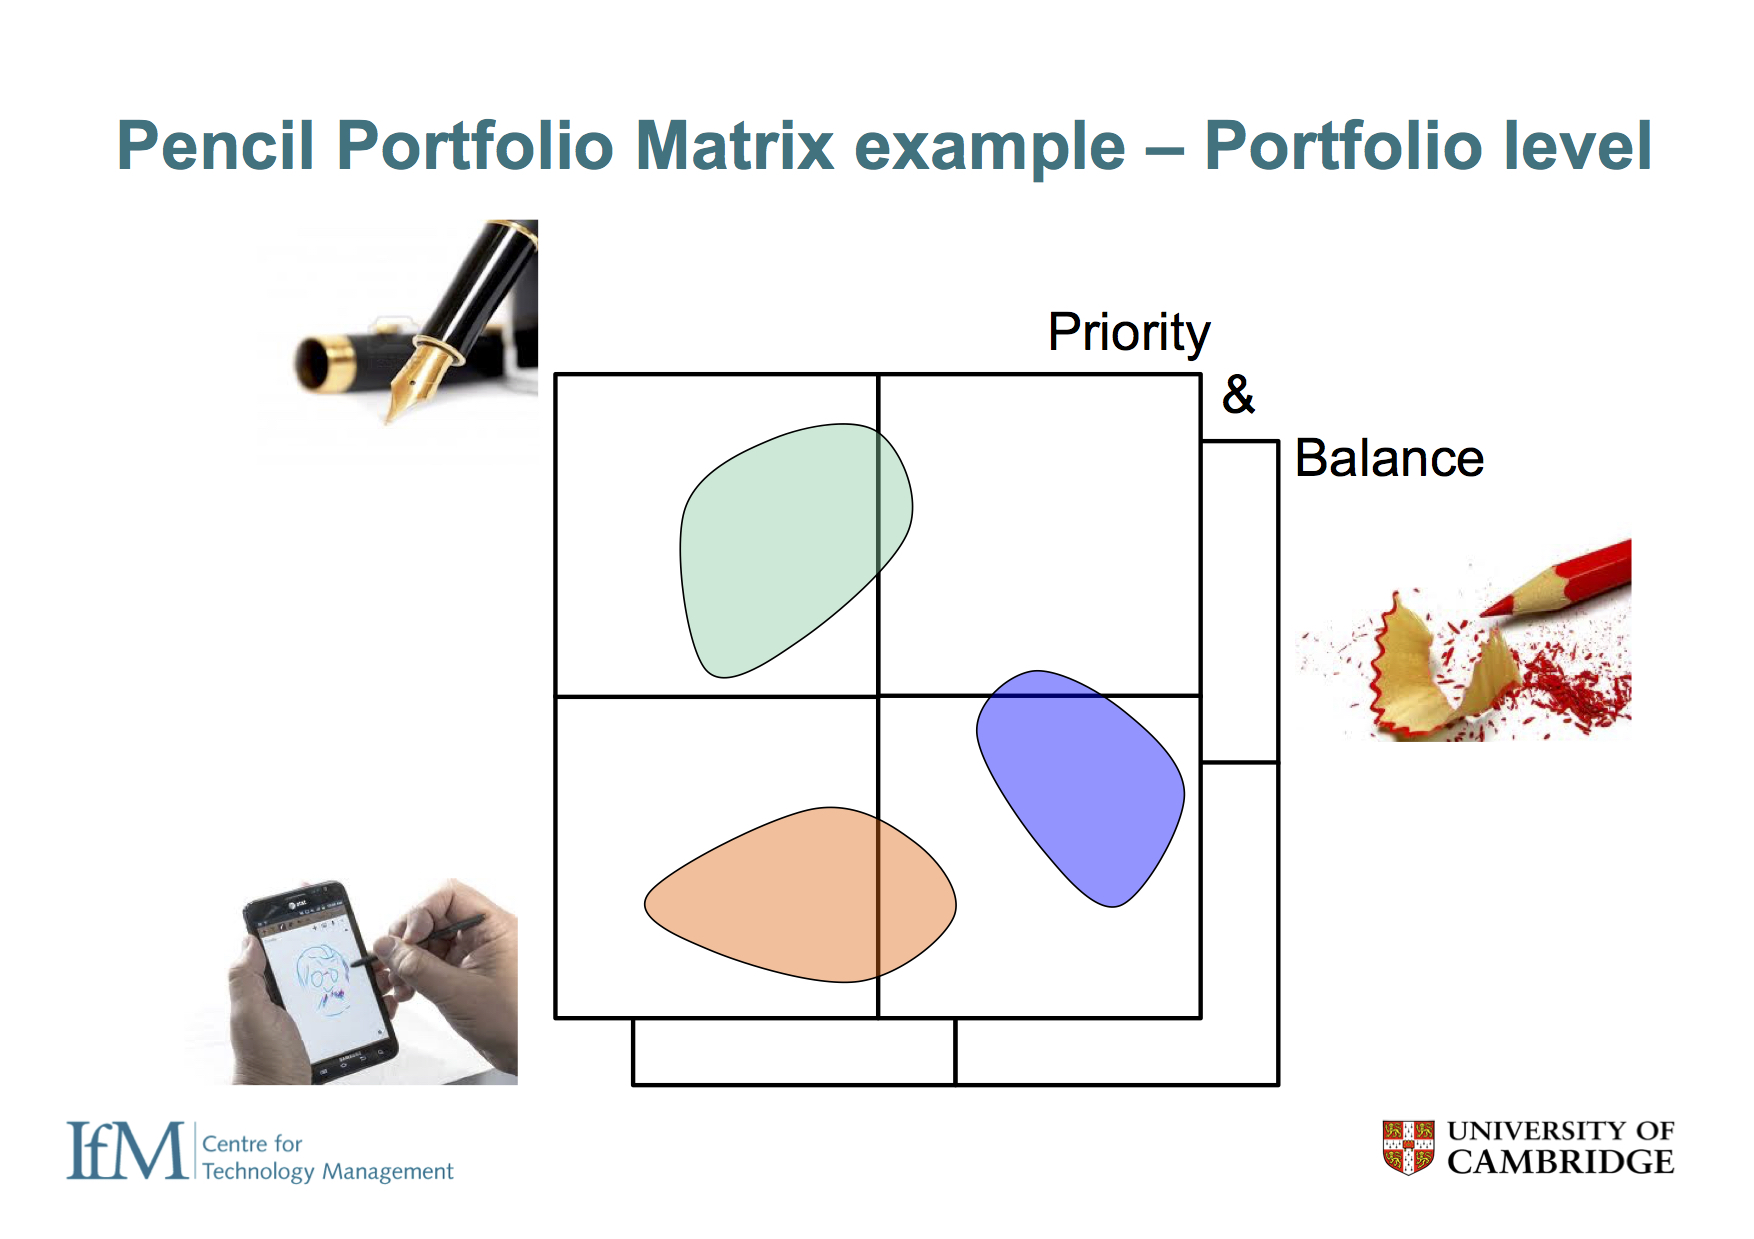 2x2 type matrices are very helpful for prioritisation - for example, should the company focus on pencils, pens or styluses? At the portfolio level these different options can be compared and contrasted, supporting decision making.